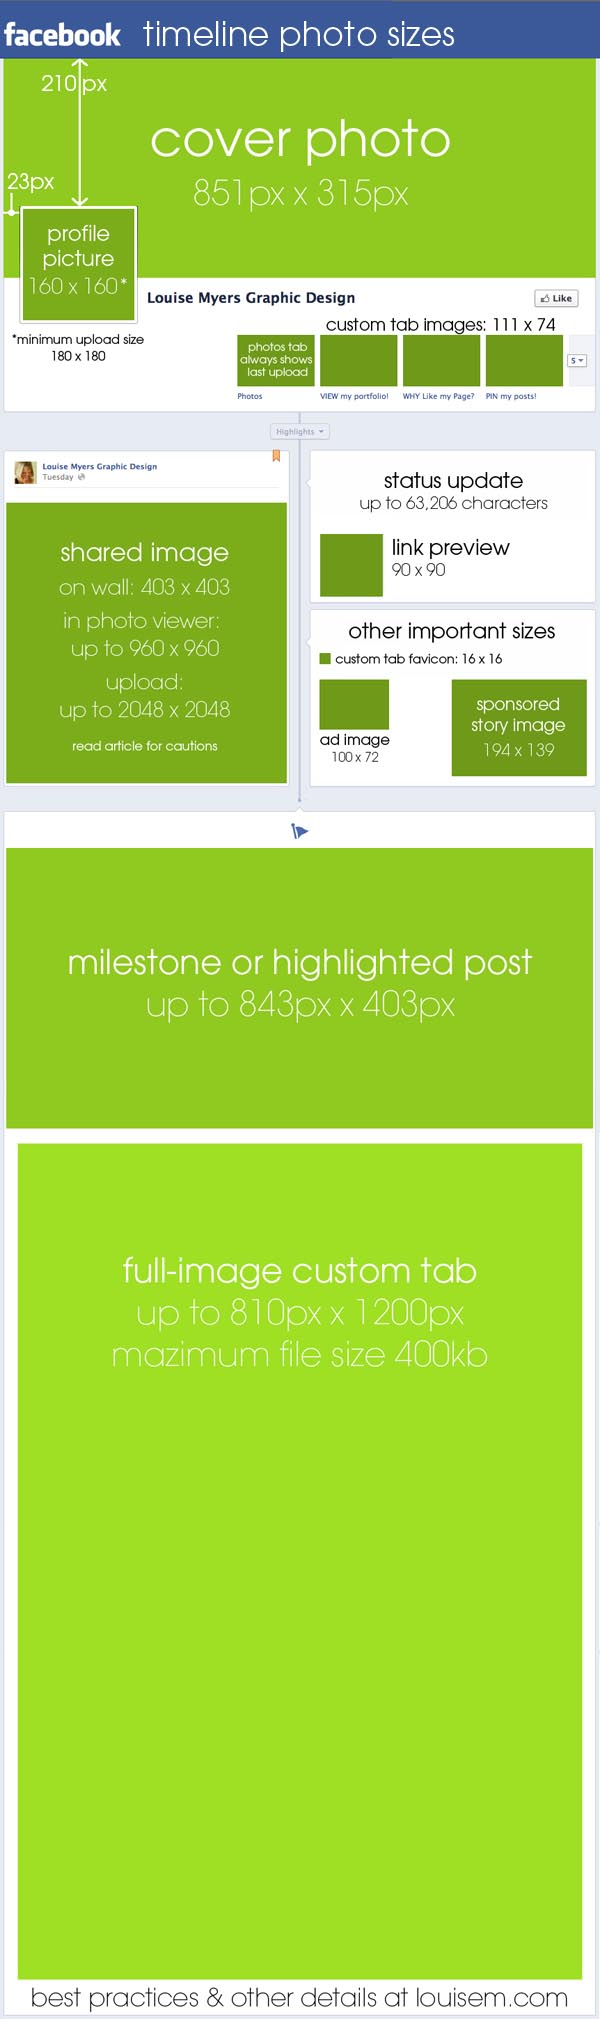 Facebook Photo Size Dimensions Infographic by Louise Myers